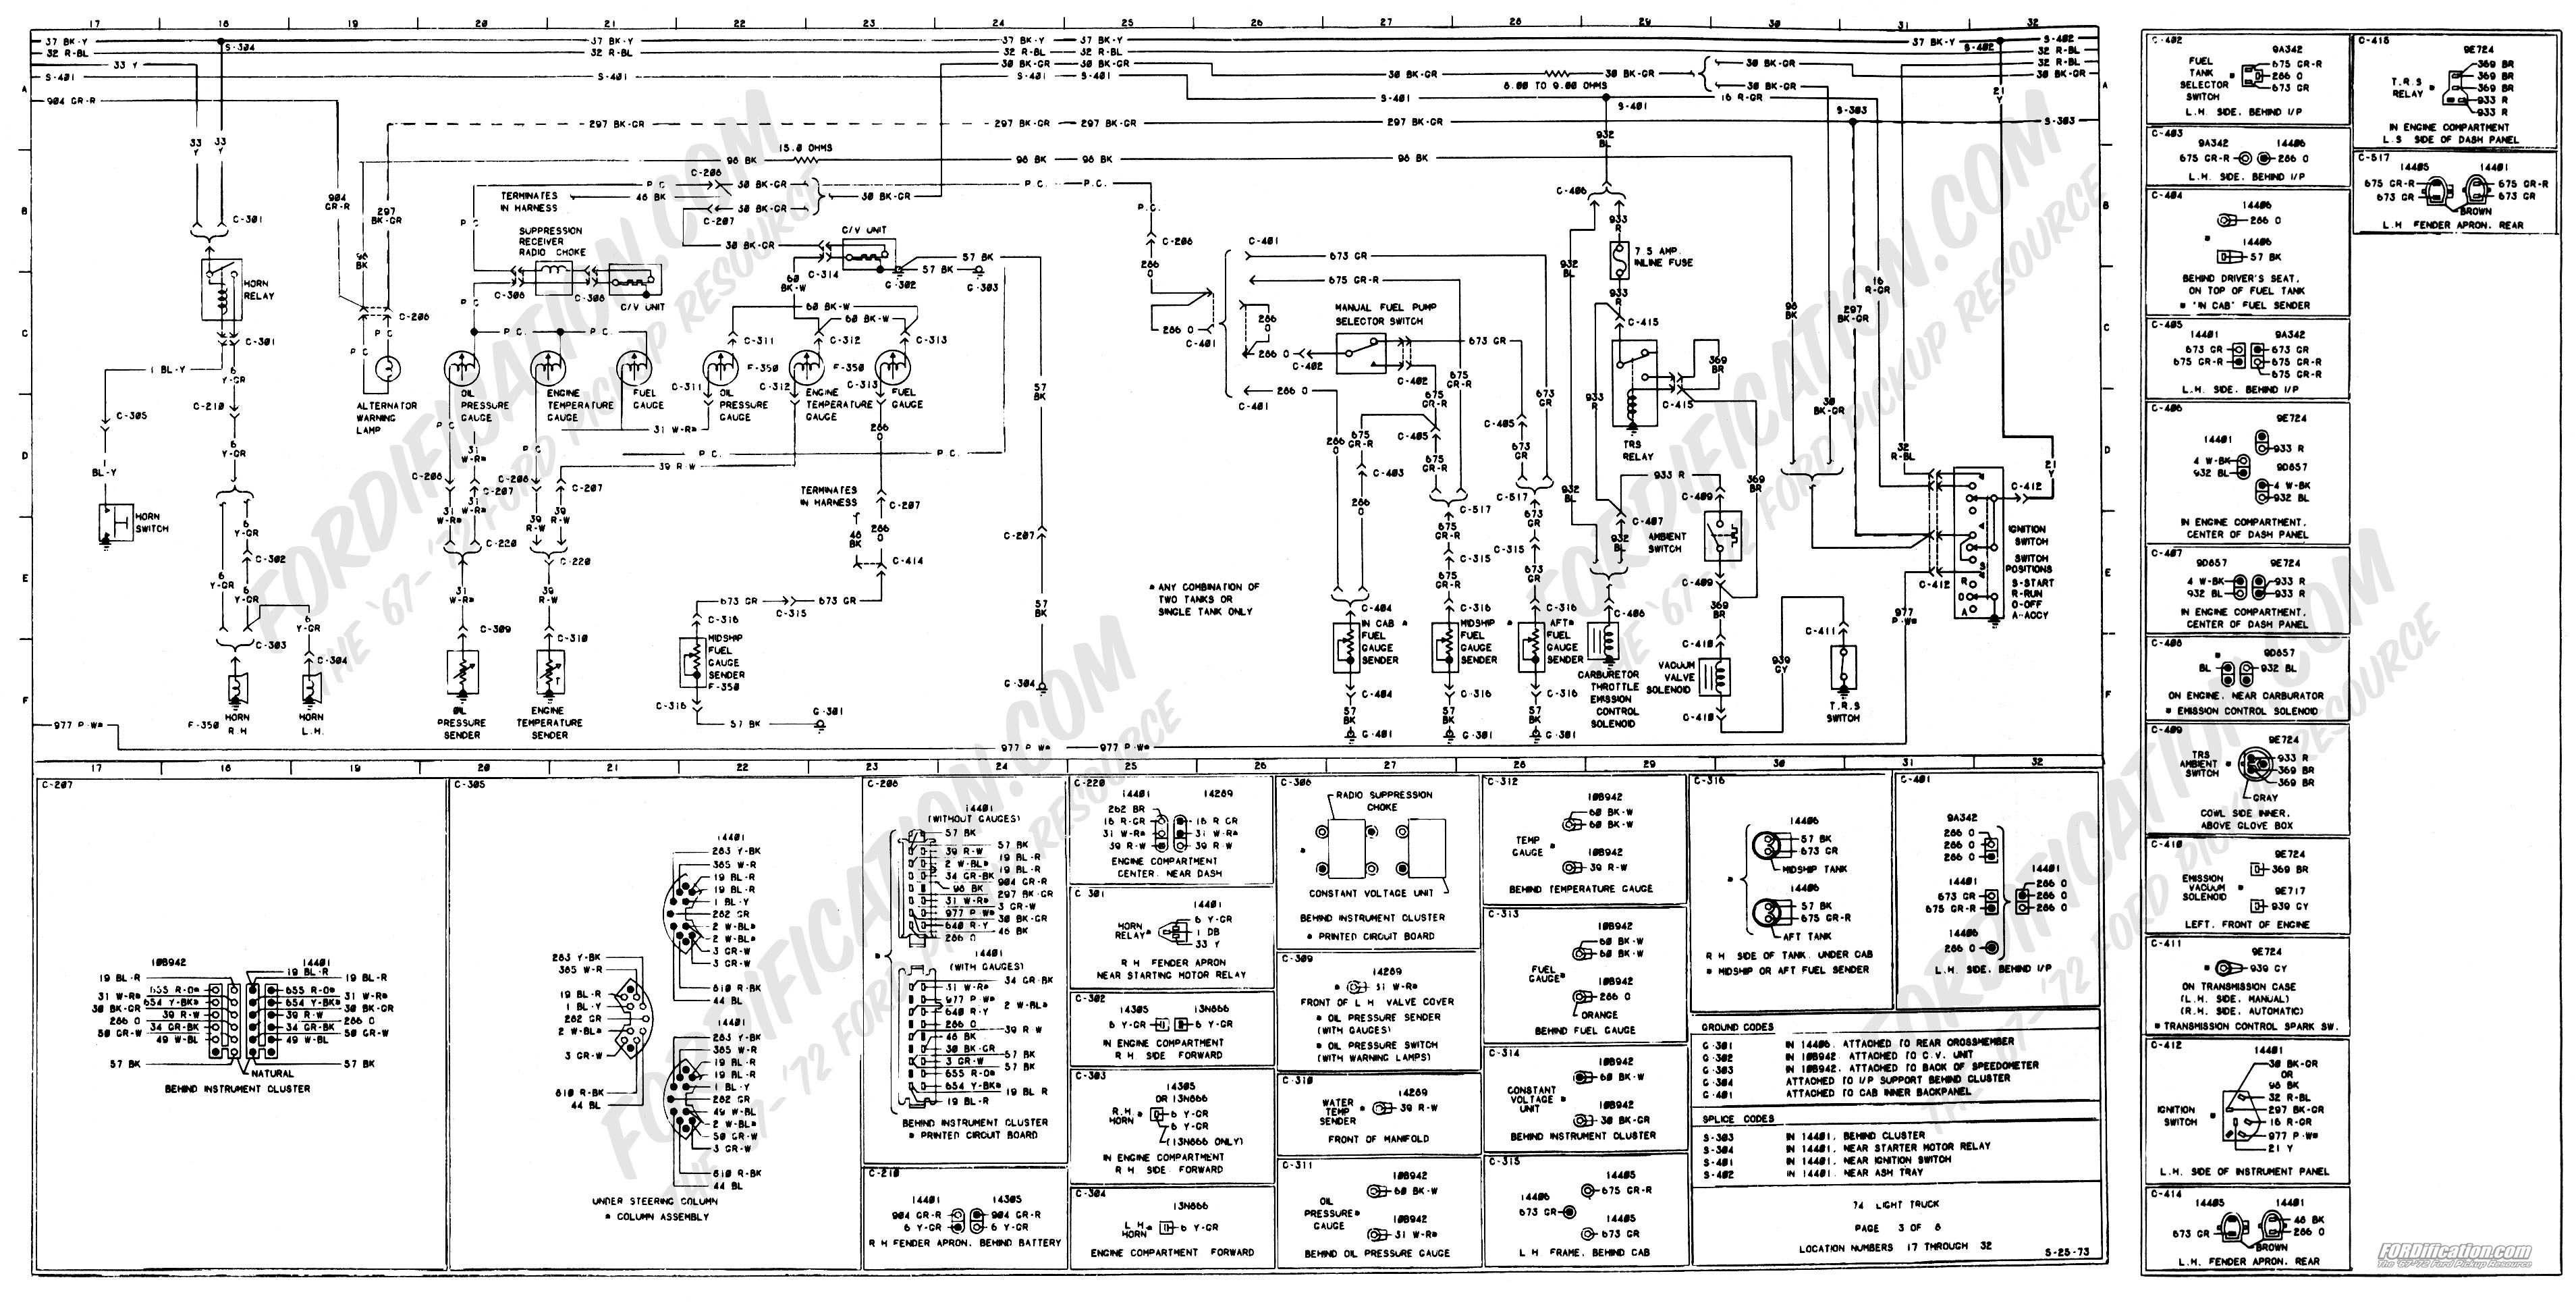 wiring_74master_3of8 74 f100 help with wiring diagram ford truck enthusiasts forums 2012 transit connect radio wiring diagram at crackthecode.co